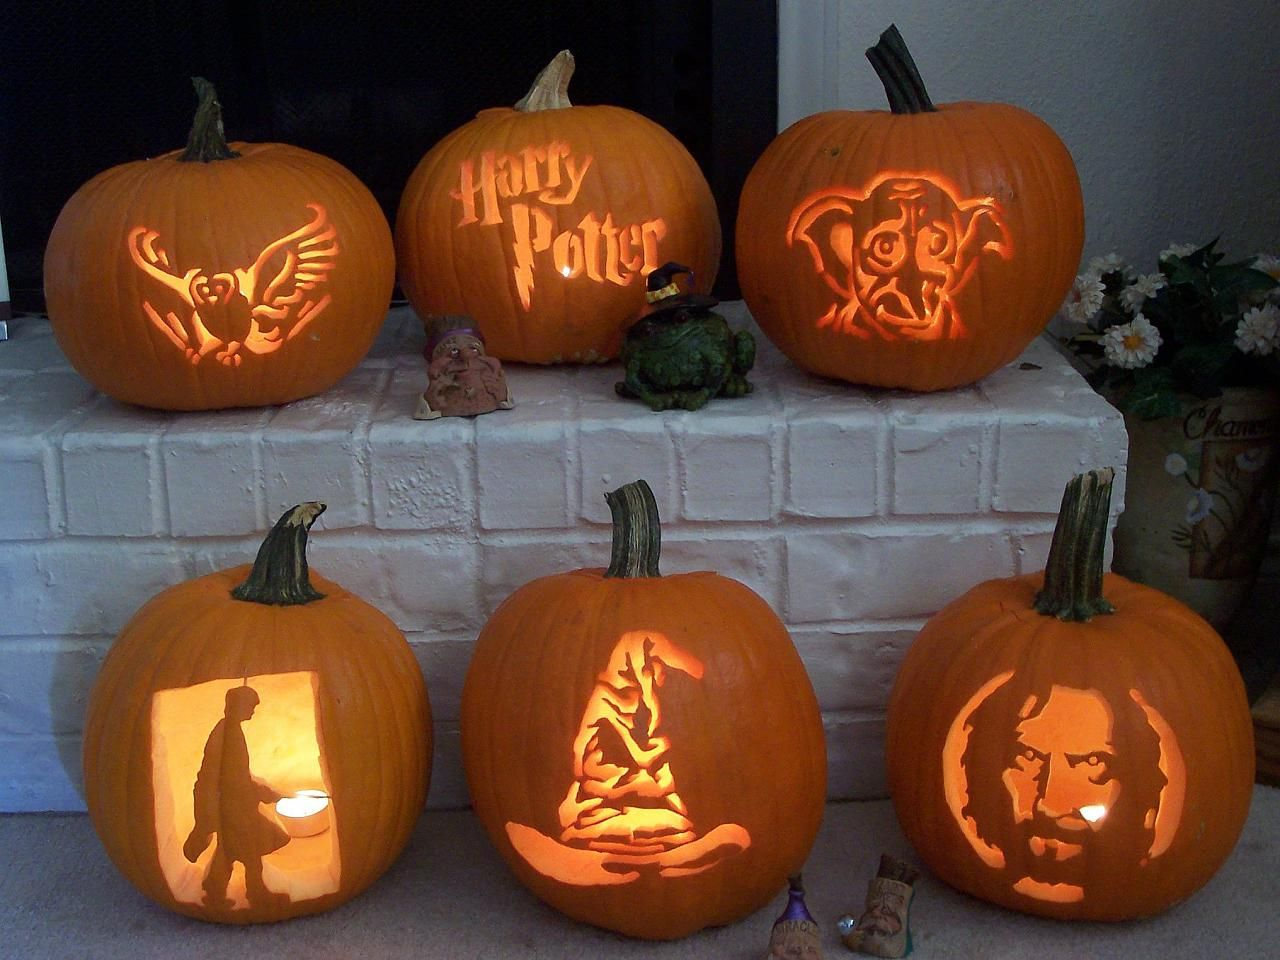 30+ creative halloween pumpkin carving ideas - awesome jack-o